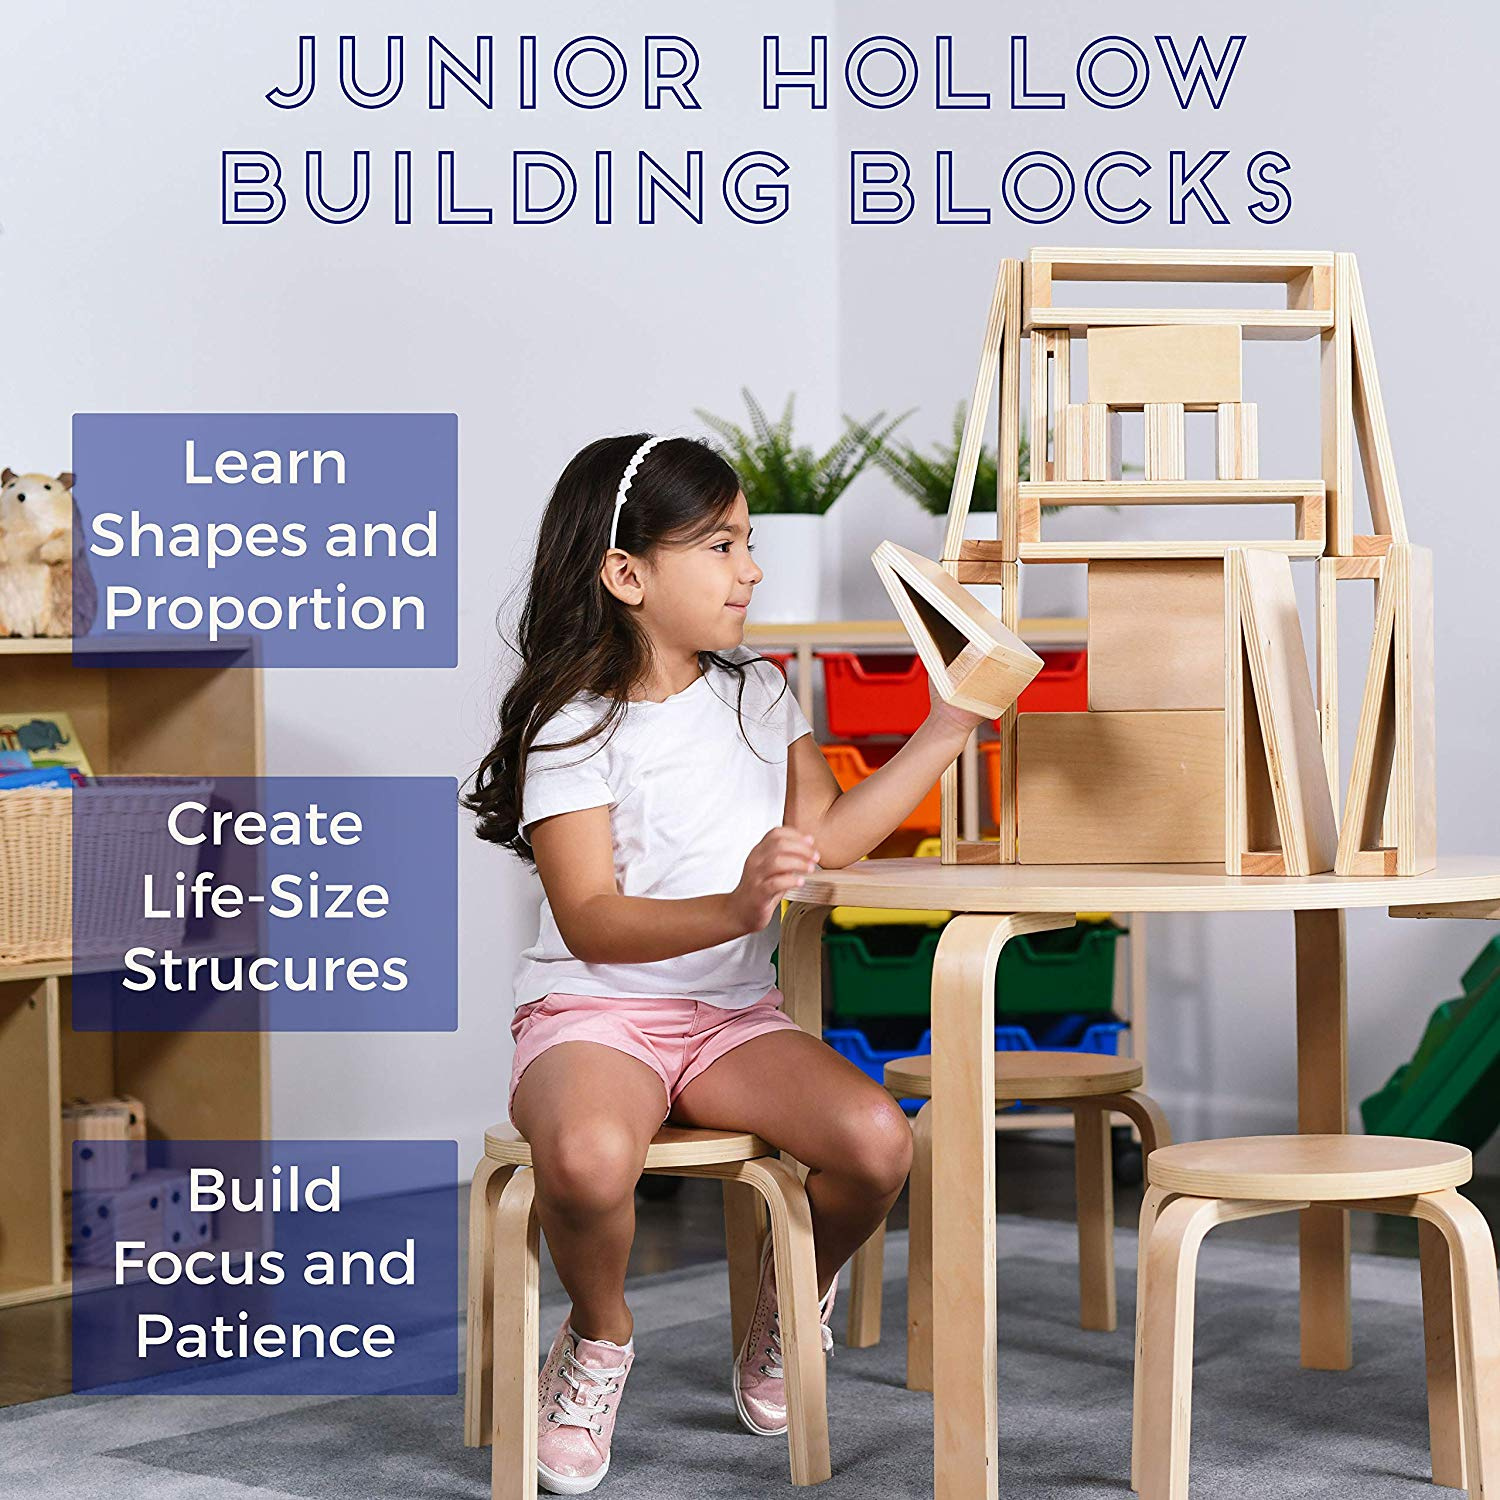 Natural Finish Educational Toy with Assorted Shapes ECR4Kids Junior Hollow Block Play Set,/Lightweight Wooden Building Blocks for Kids Play 16 Pieces